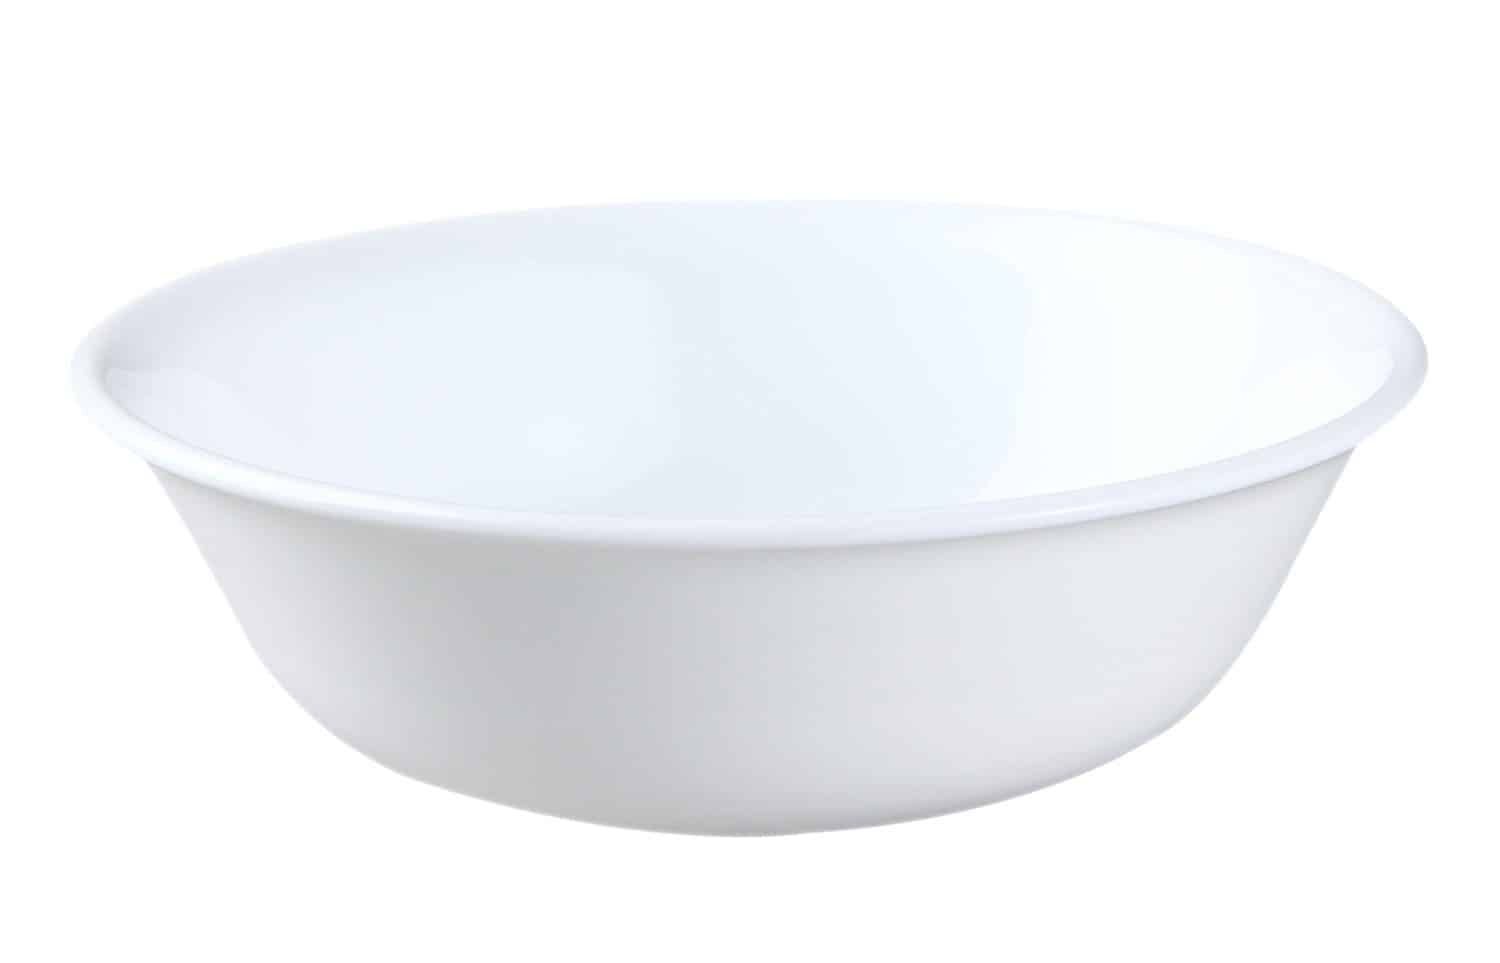 Corelle Winter Frost 6-pack white cereal bowl is made of Corelle triple-layer glass, which is break and chip resistant, lightweight, and easily stackable for space saving.